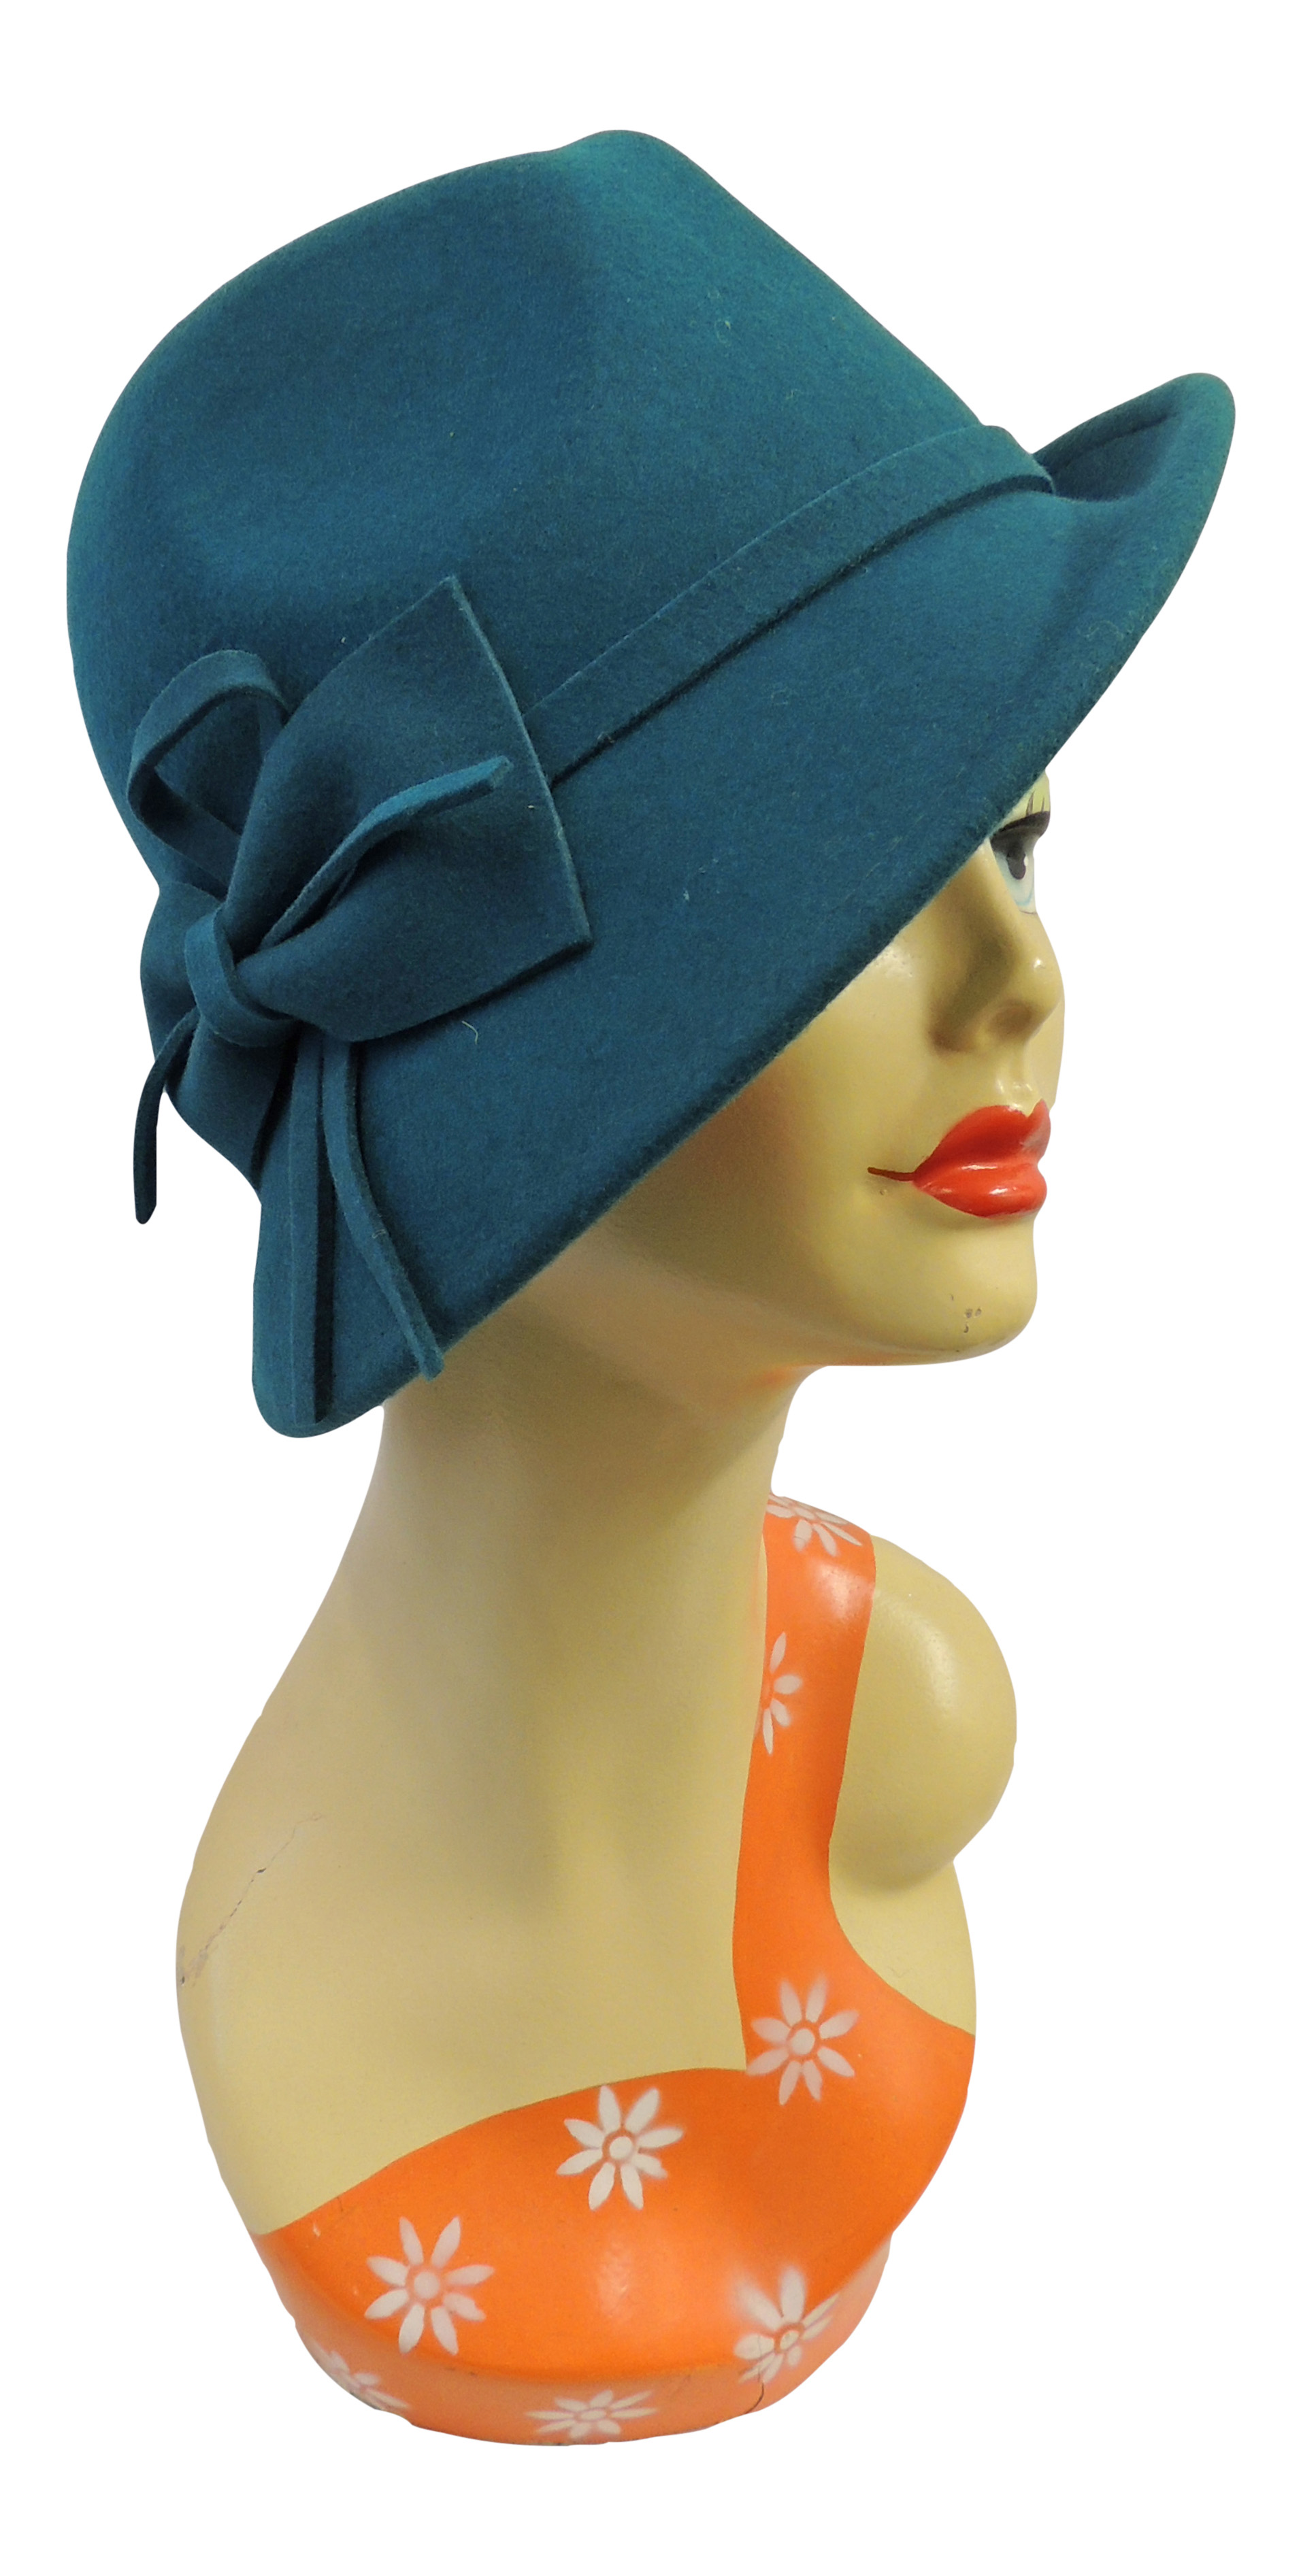 1920s Accessories | Great Gatsby Accessories Guide    Retro Vintage 1920s 1930s 1940s style Felt Fedora Cloche Gatsby Trilby Hat $29.99 AT vintagedancer.com